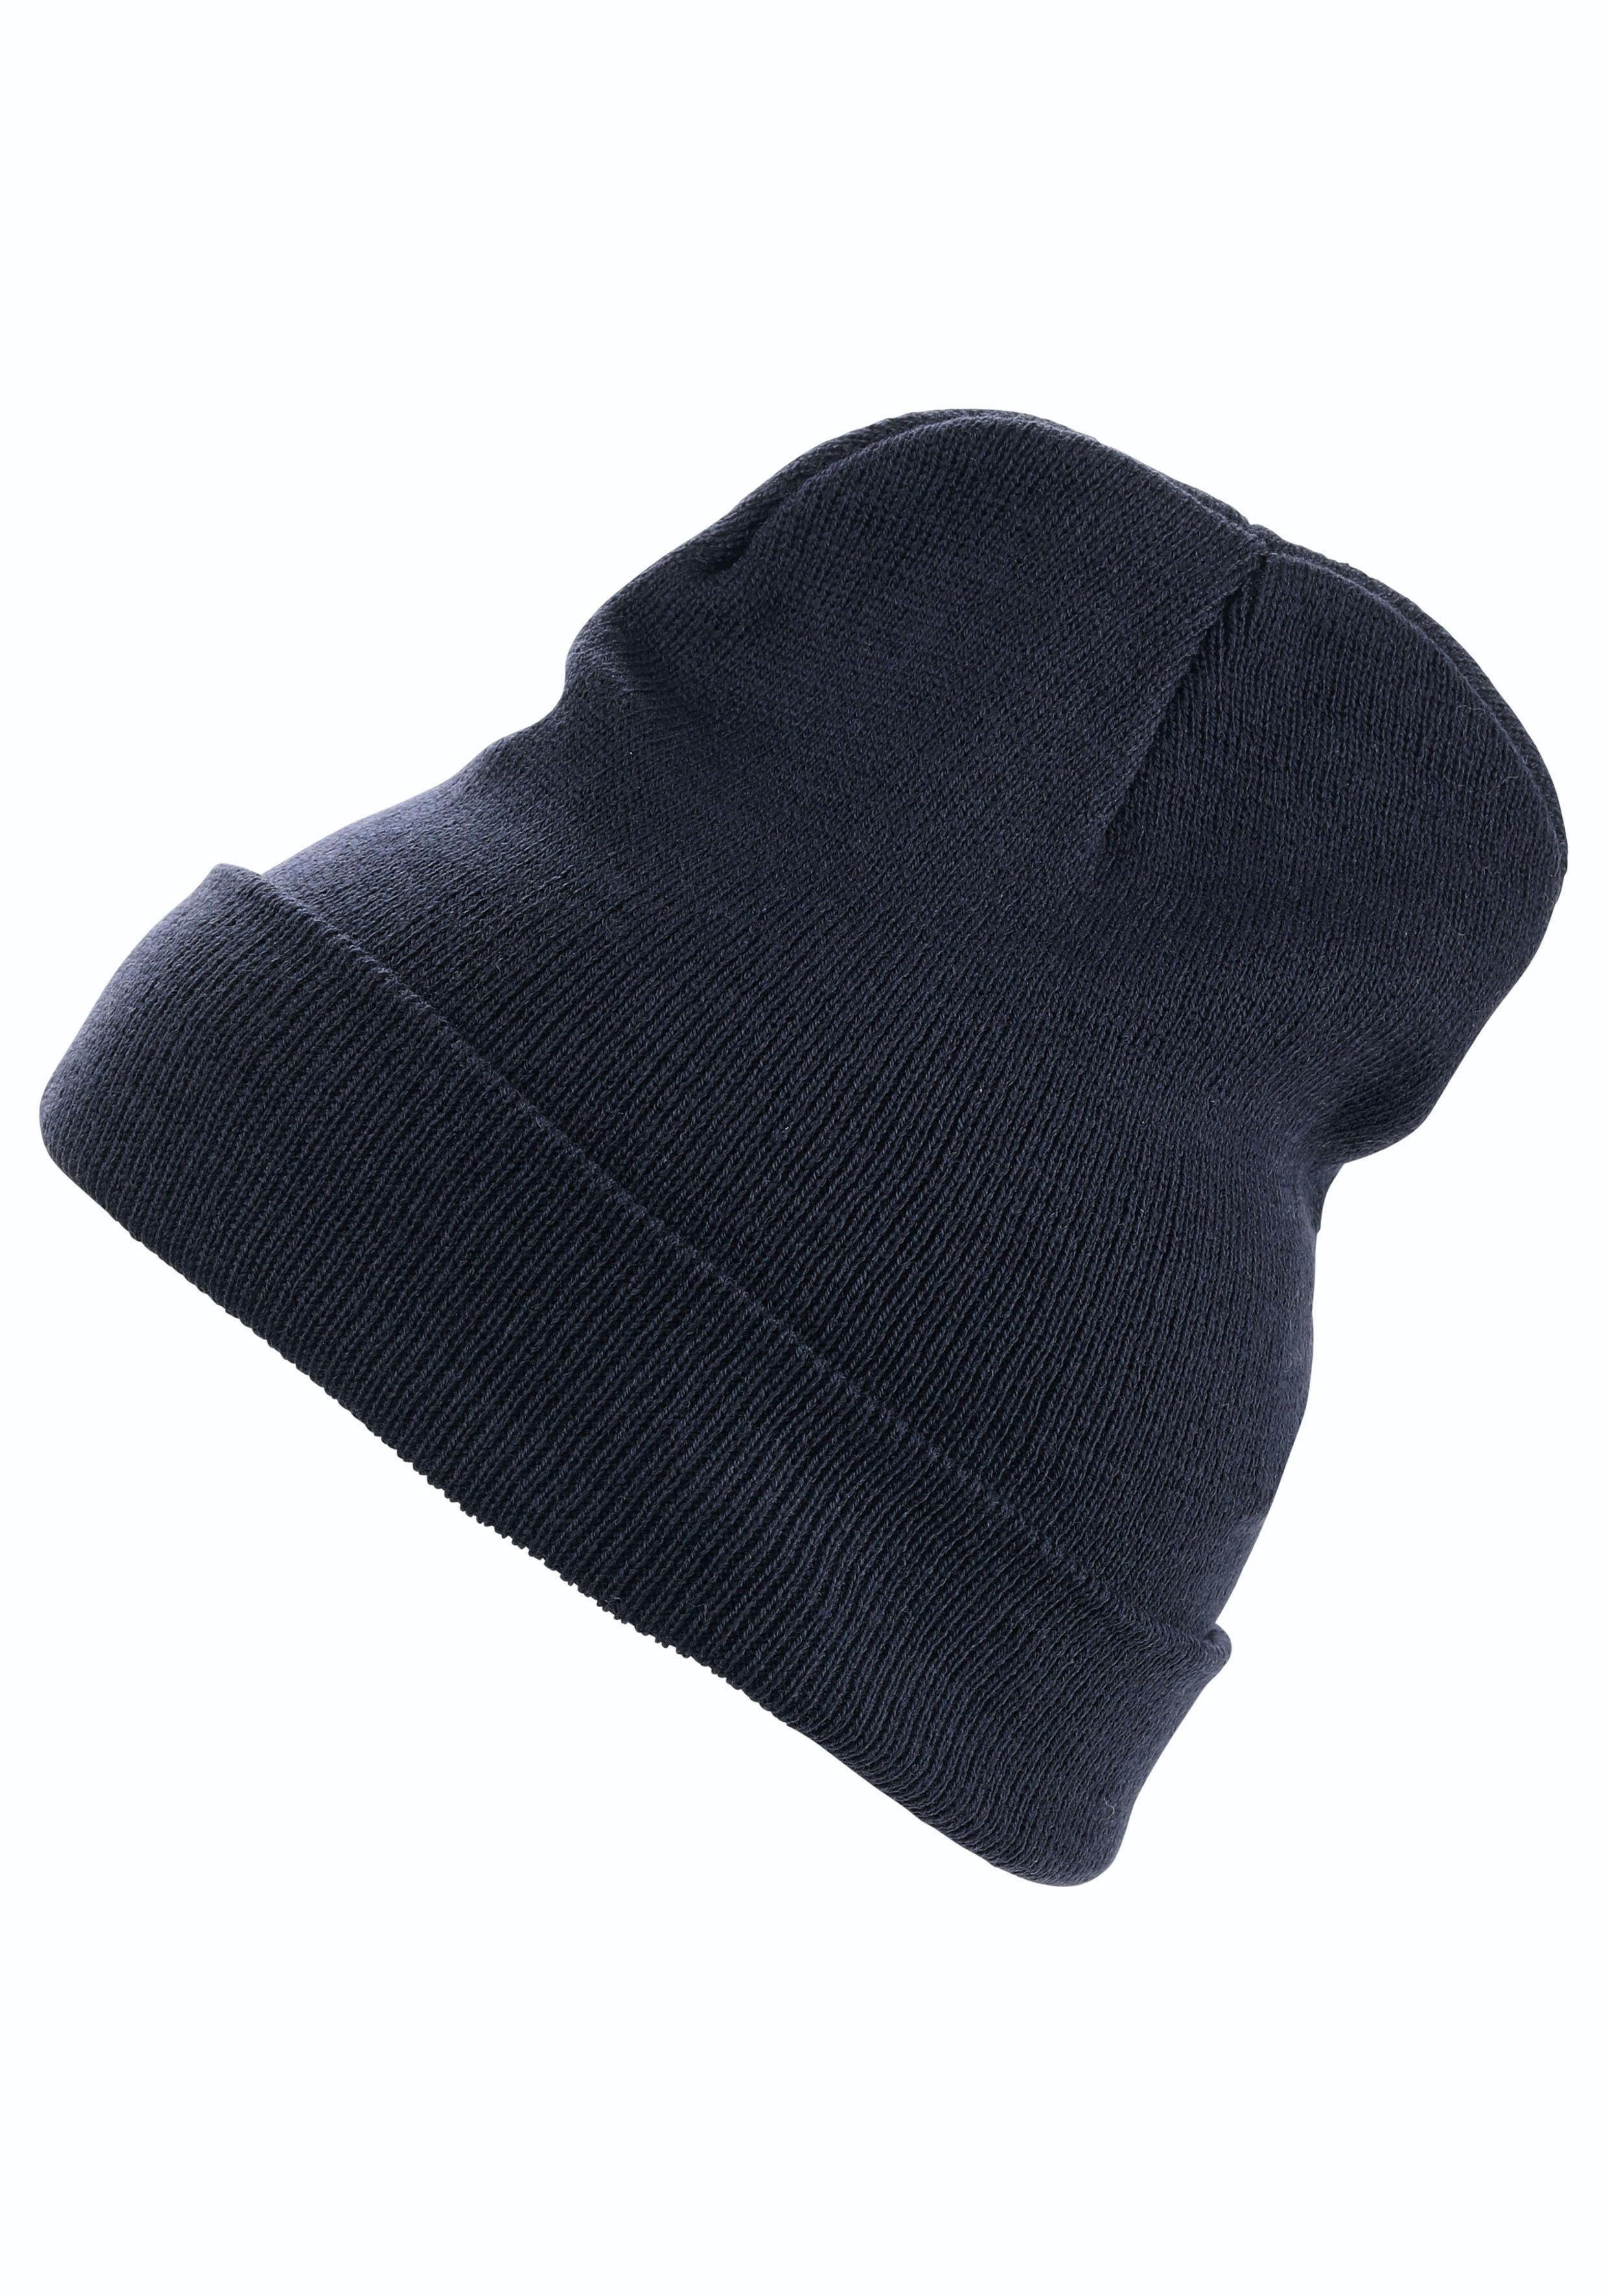 MSTRDS Beanie in Oversize-Form